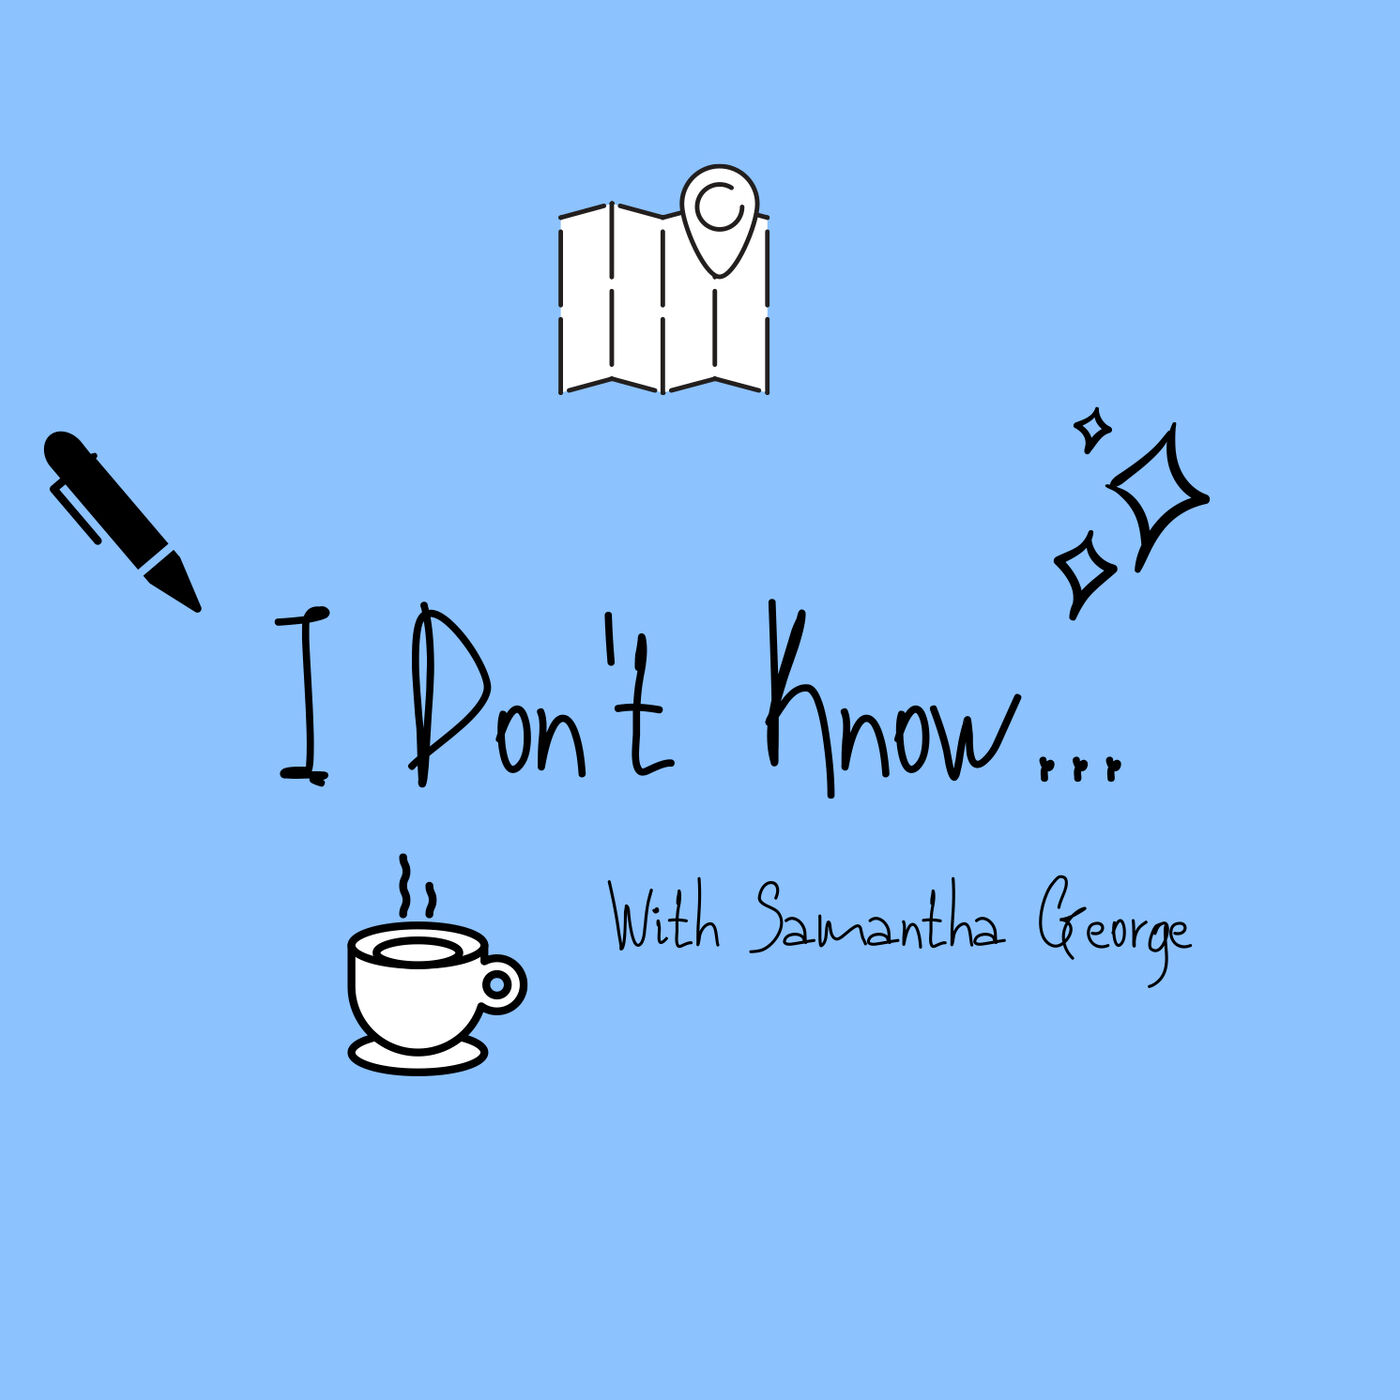 I Don't Know with Samantha George (Trailer)